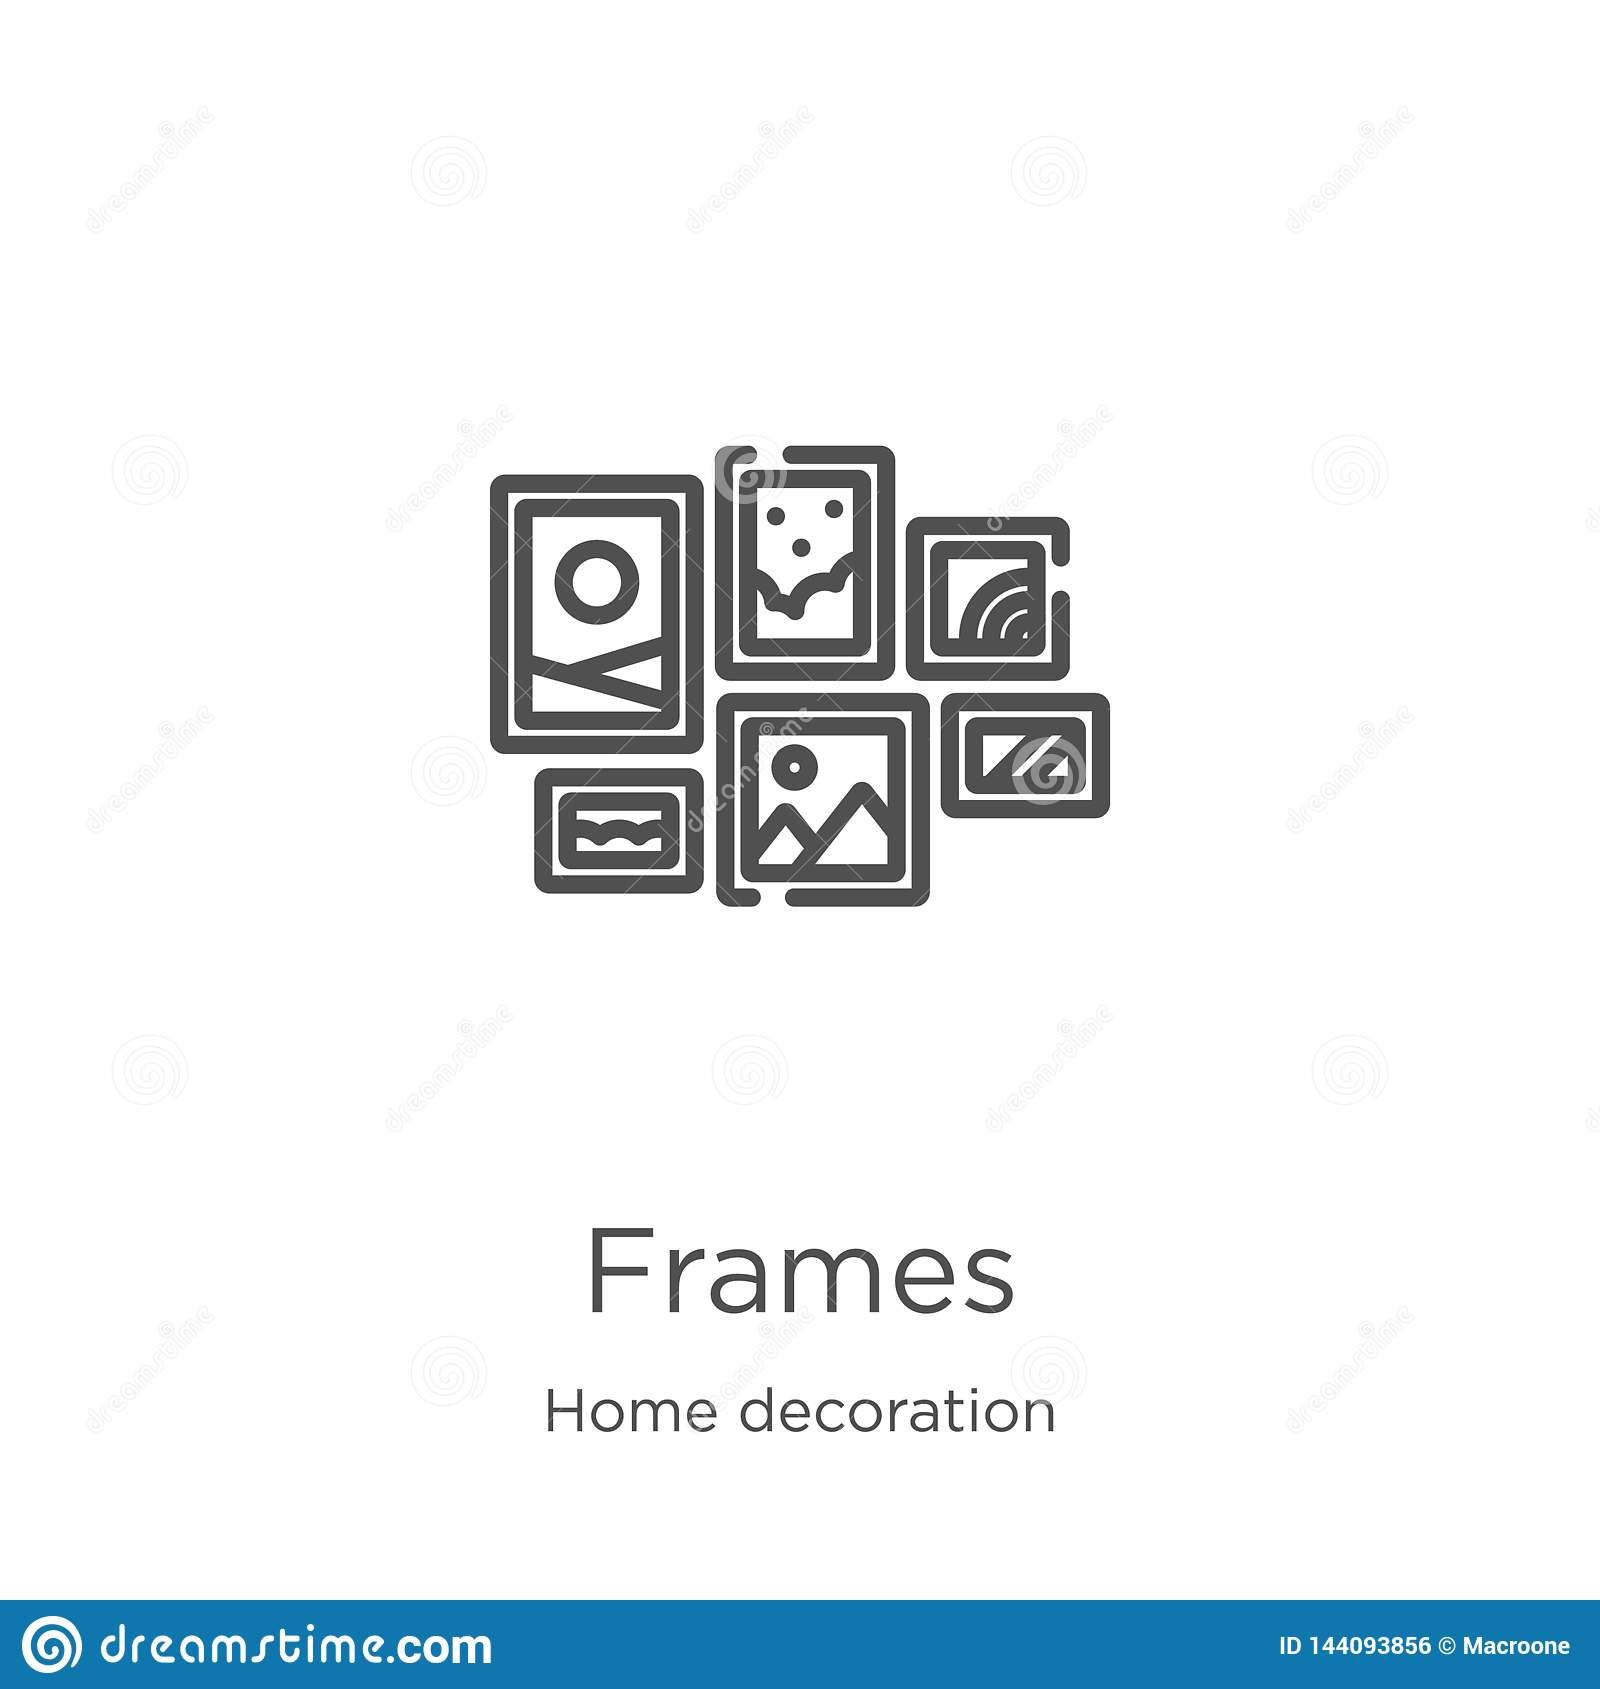 Home Decoration Collection Frames Icon Vector From Home Decoration Collection Thin Line